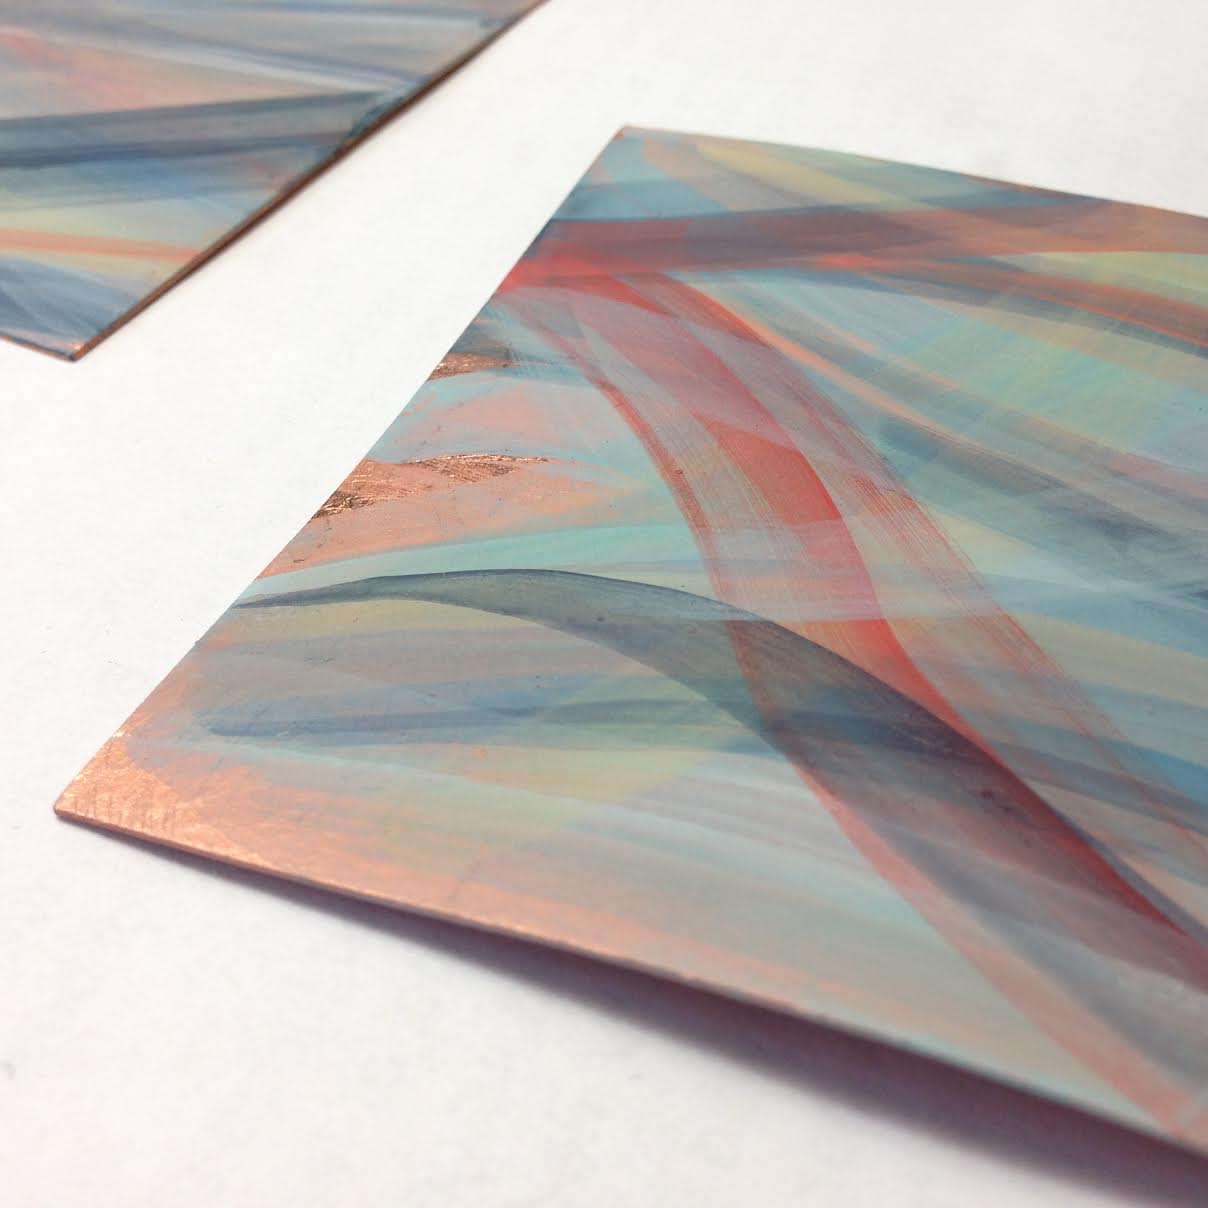 Samples of pigments on copper.